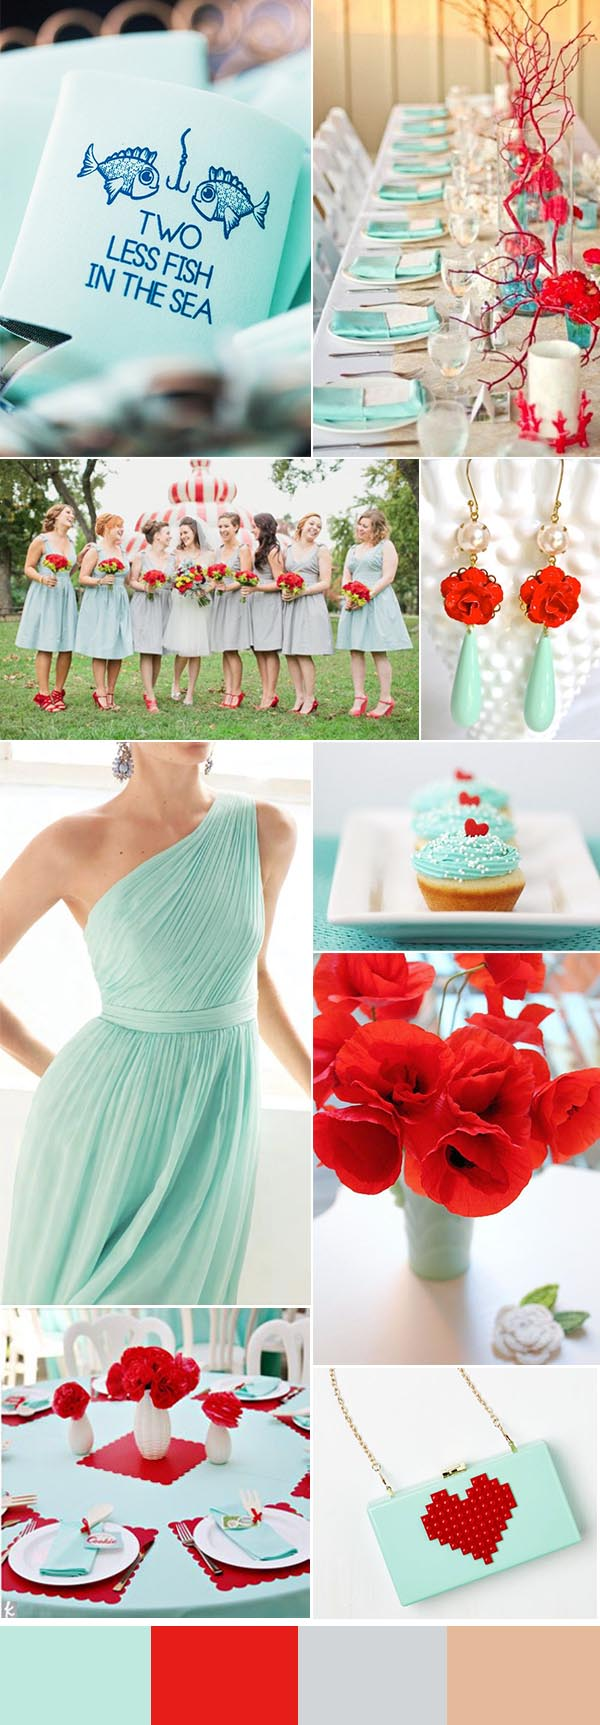 red-and-mint-summer-wedding-ideas-with-summer-wedding-koozie-favor